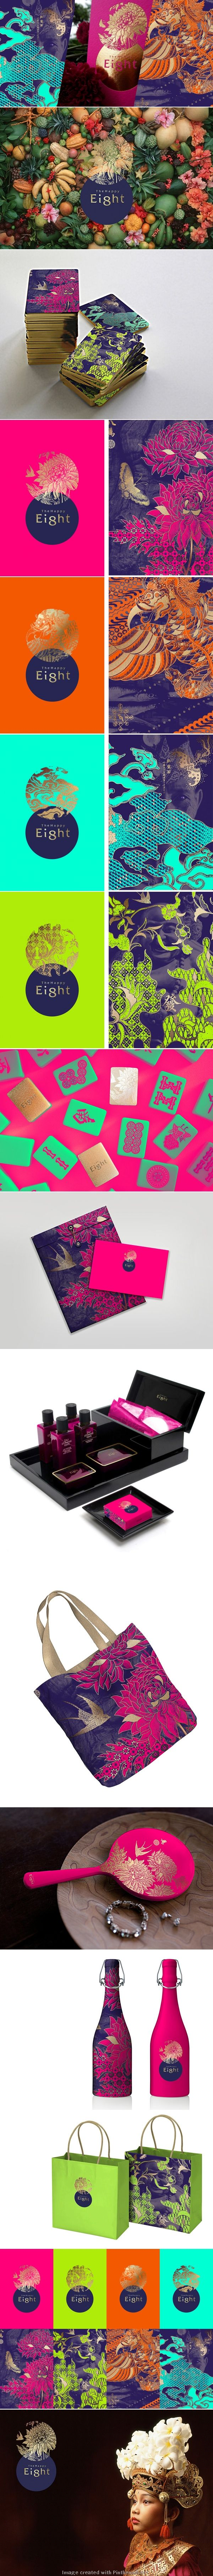 Who could resist this stellar Happy Eight Hotel #identity #packaging #branding curated by Packaging Diva PD #2014 top pin